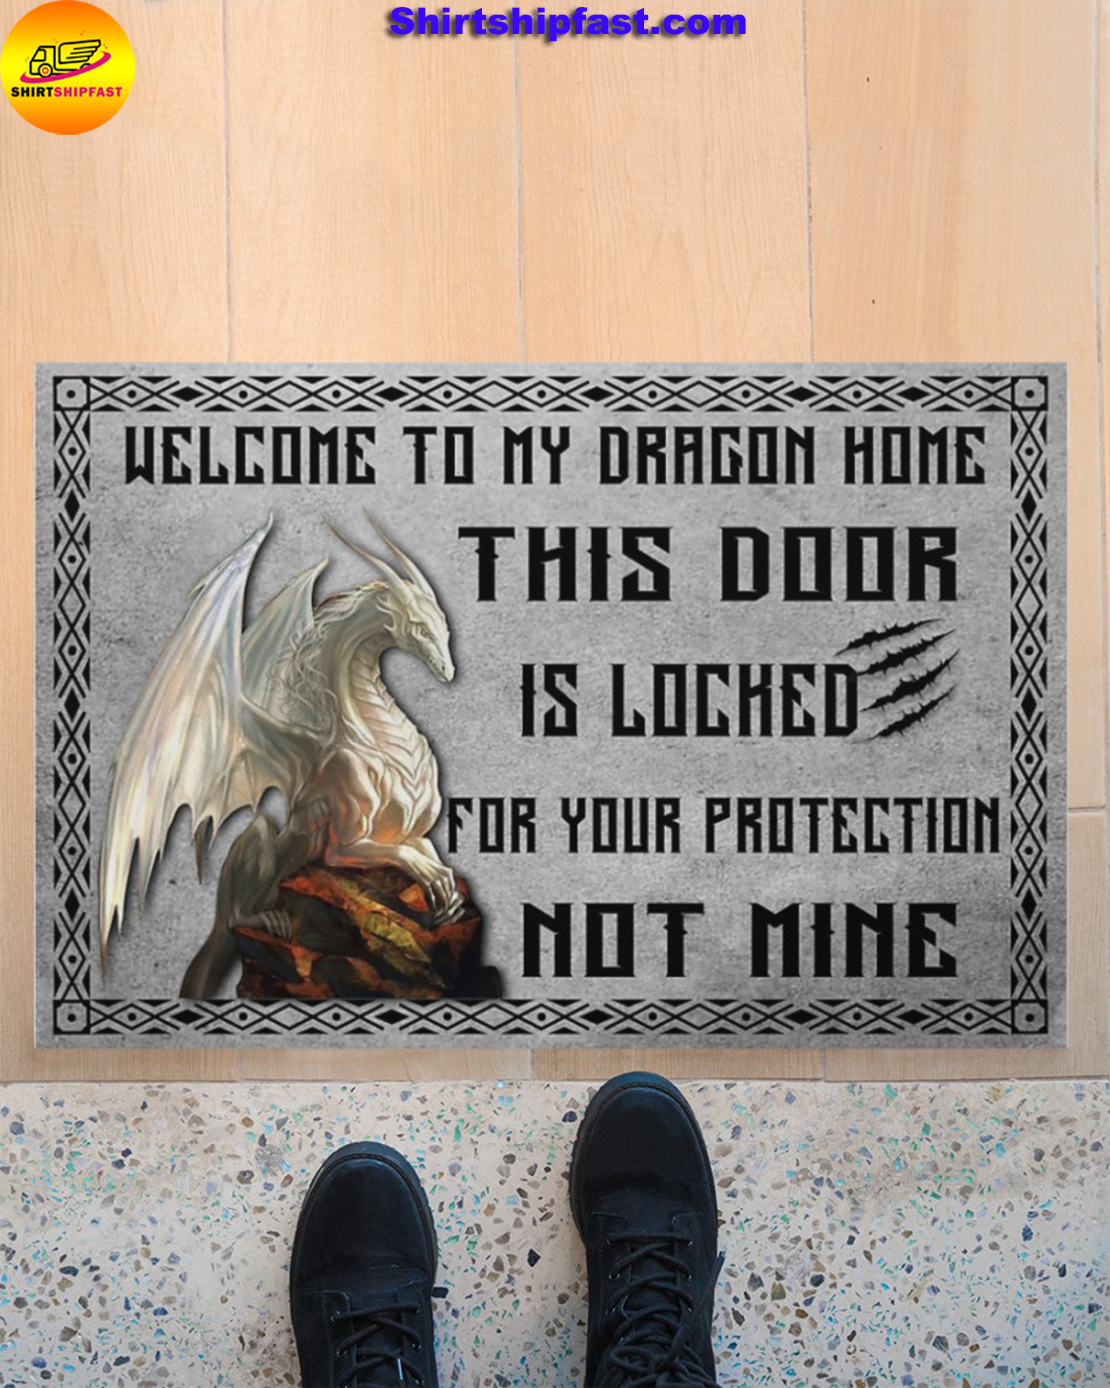 Welcome to my dragon home this door is locked for your protection not mine doormat - Picture 2